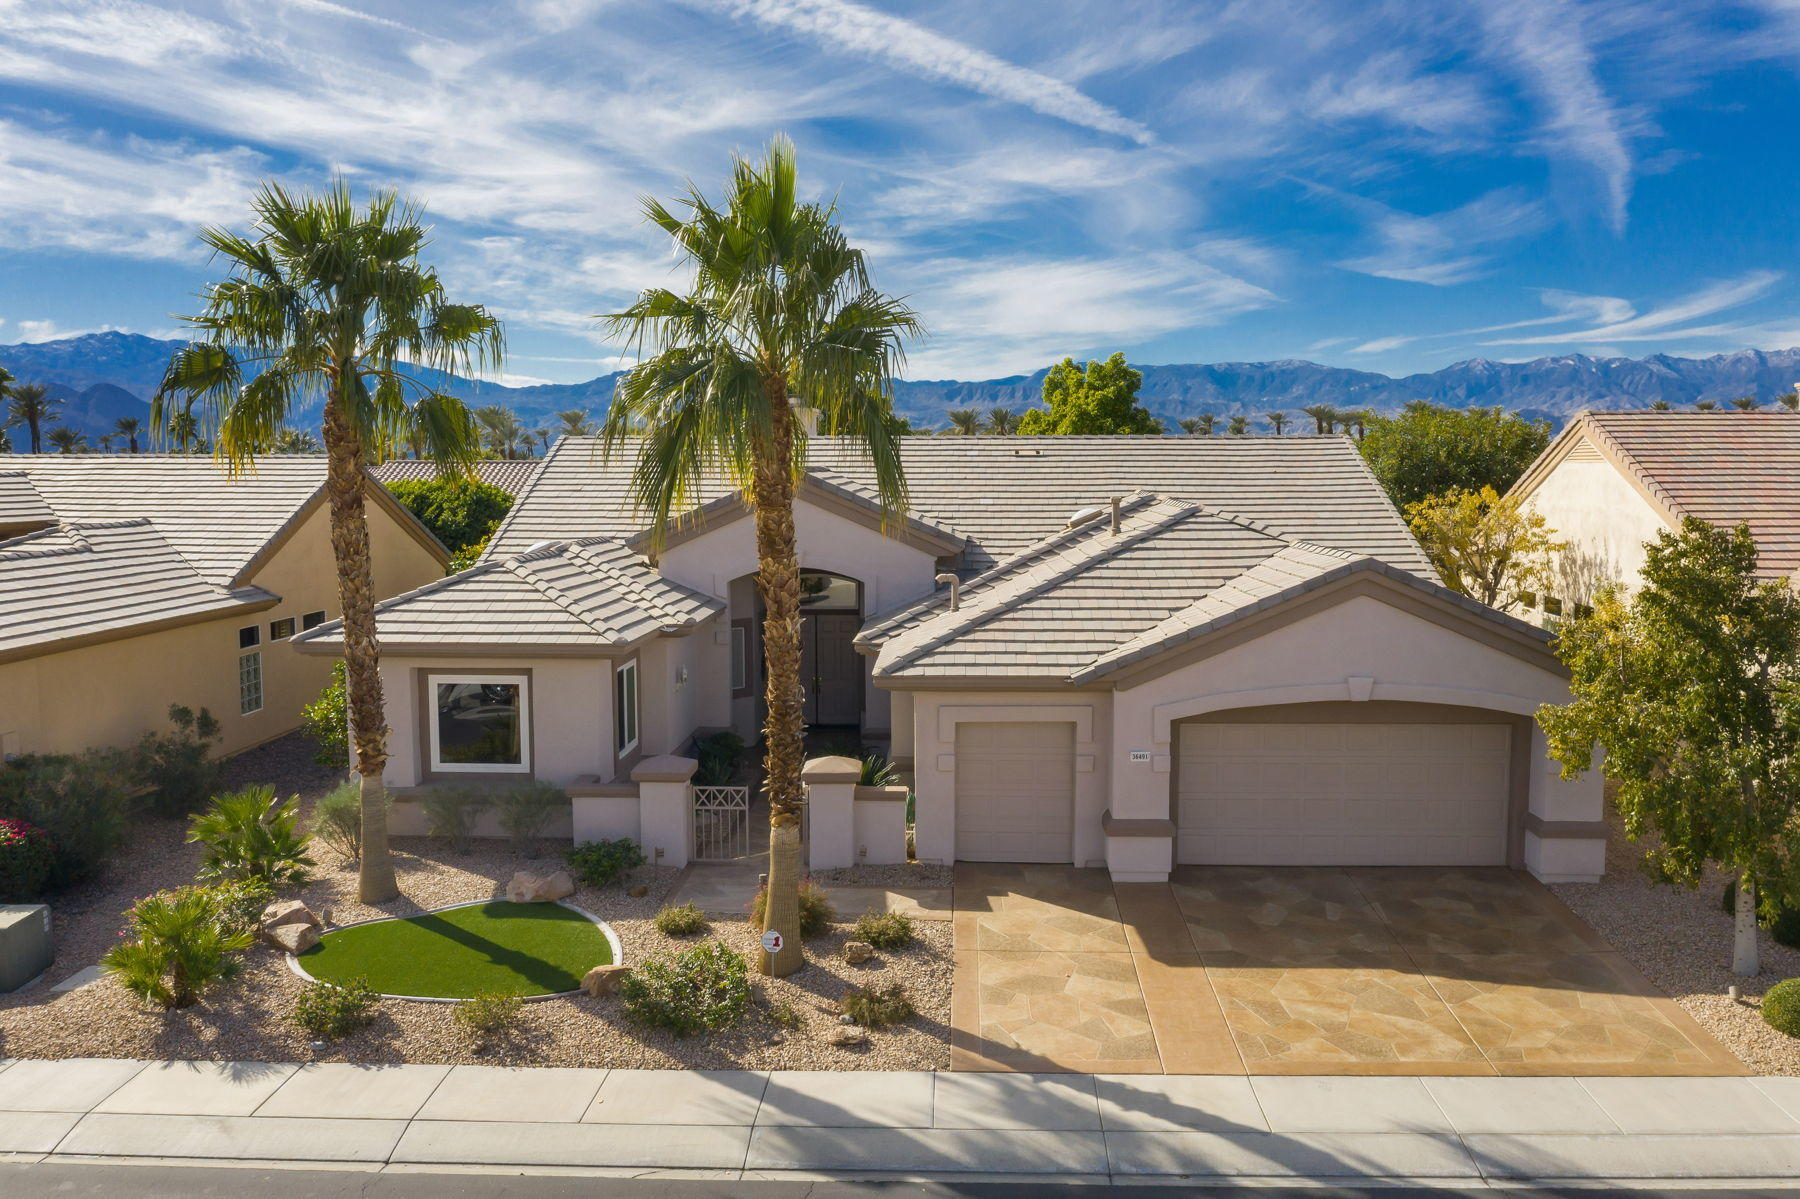 Photo of 36491 Tallowood Drive, Palm Desert, CA 92211